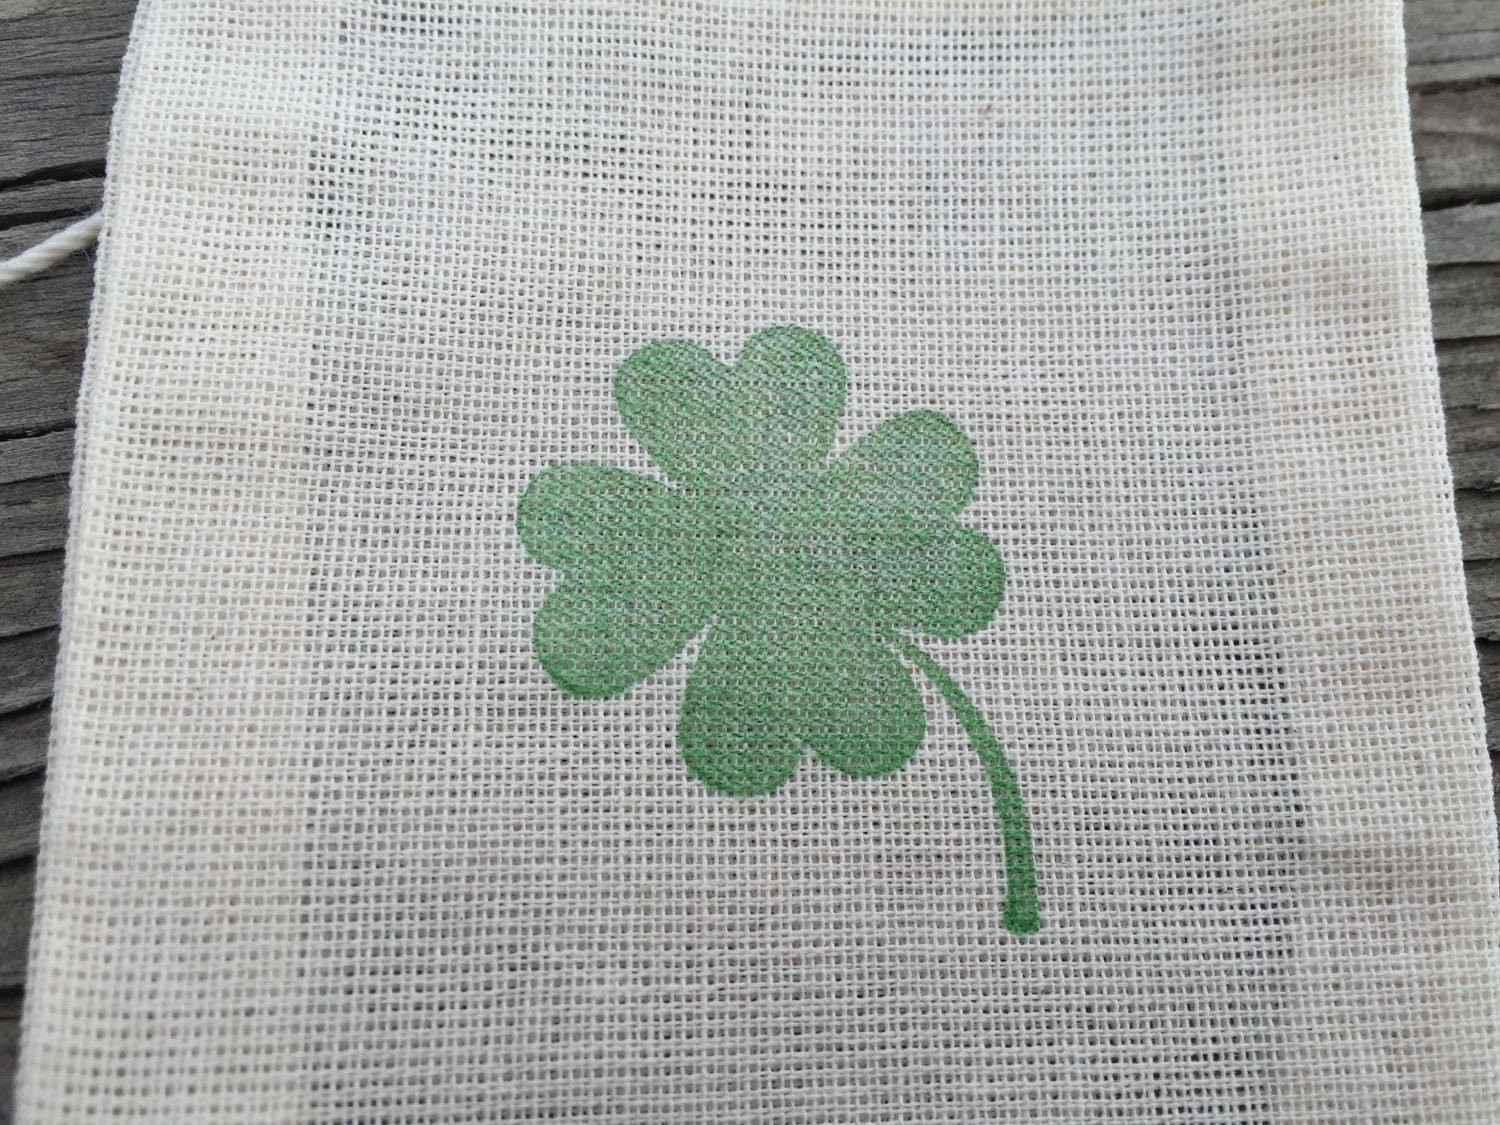 10 Four leaf clover favor bags, 3x4 irish favor bags, irish wedding favors, Saint Patricks day favor bags